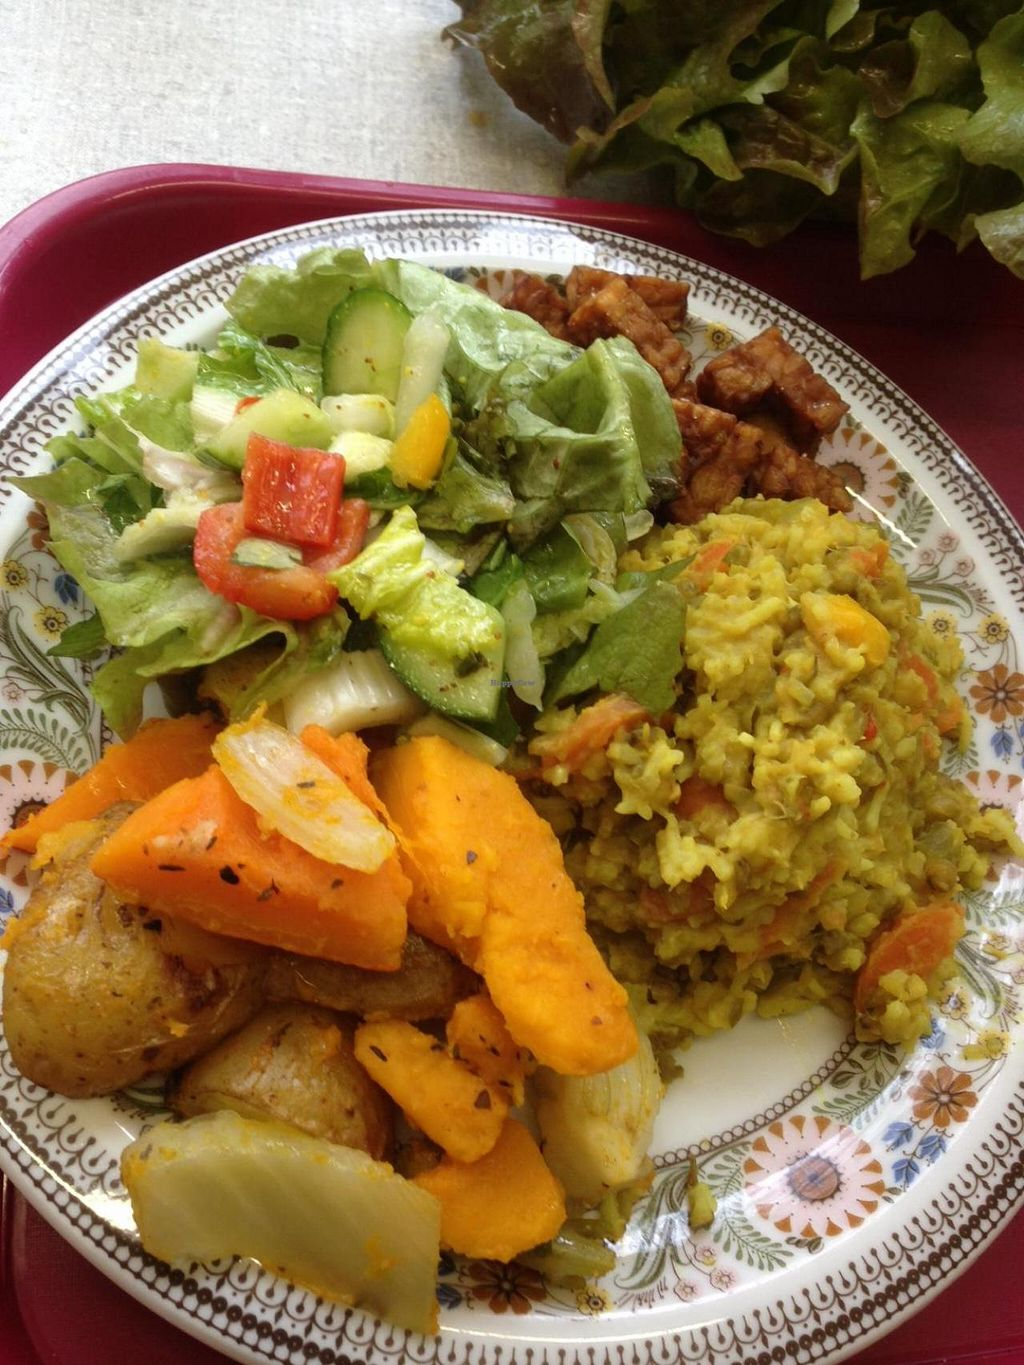 """Photo of Daily Delicious  by <a href=""""/members/profile/DailyDelicious"""">DailyDelicious</a> <br/>catering service  <br/> March 28, 2015  - <a href='/contact/abuse/image/56959/97209'>Report</a>"""